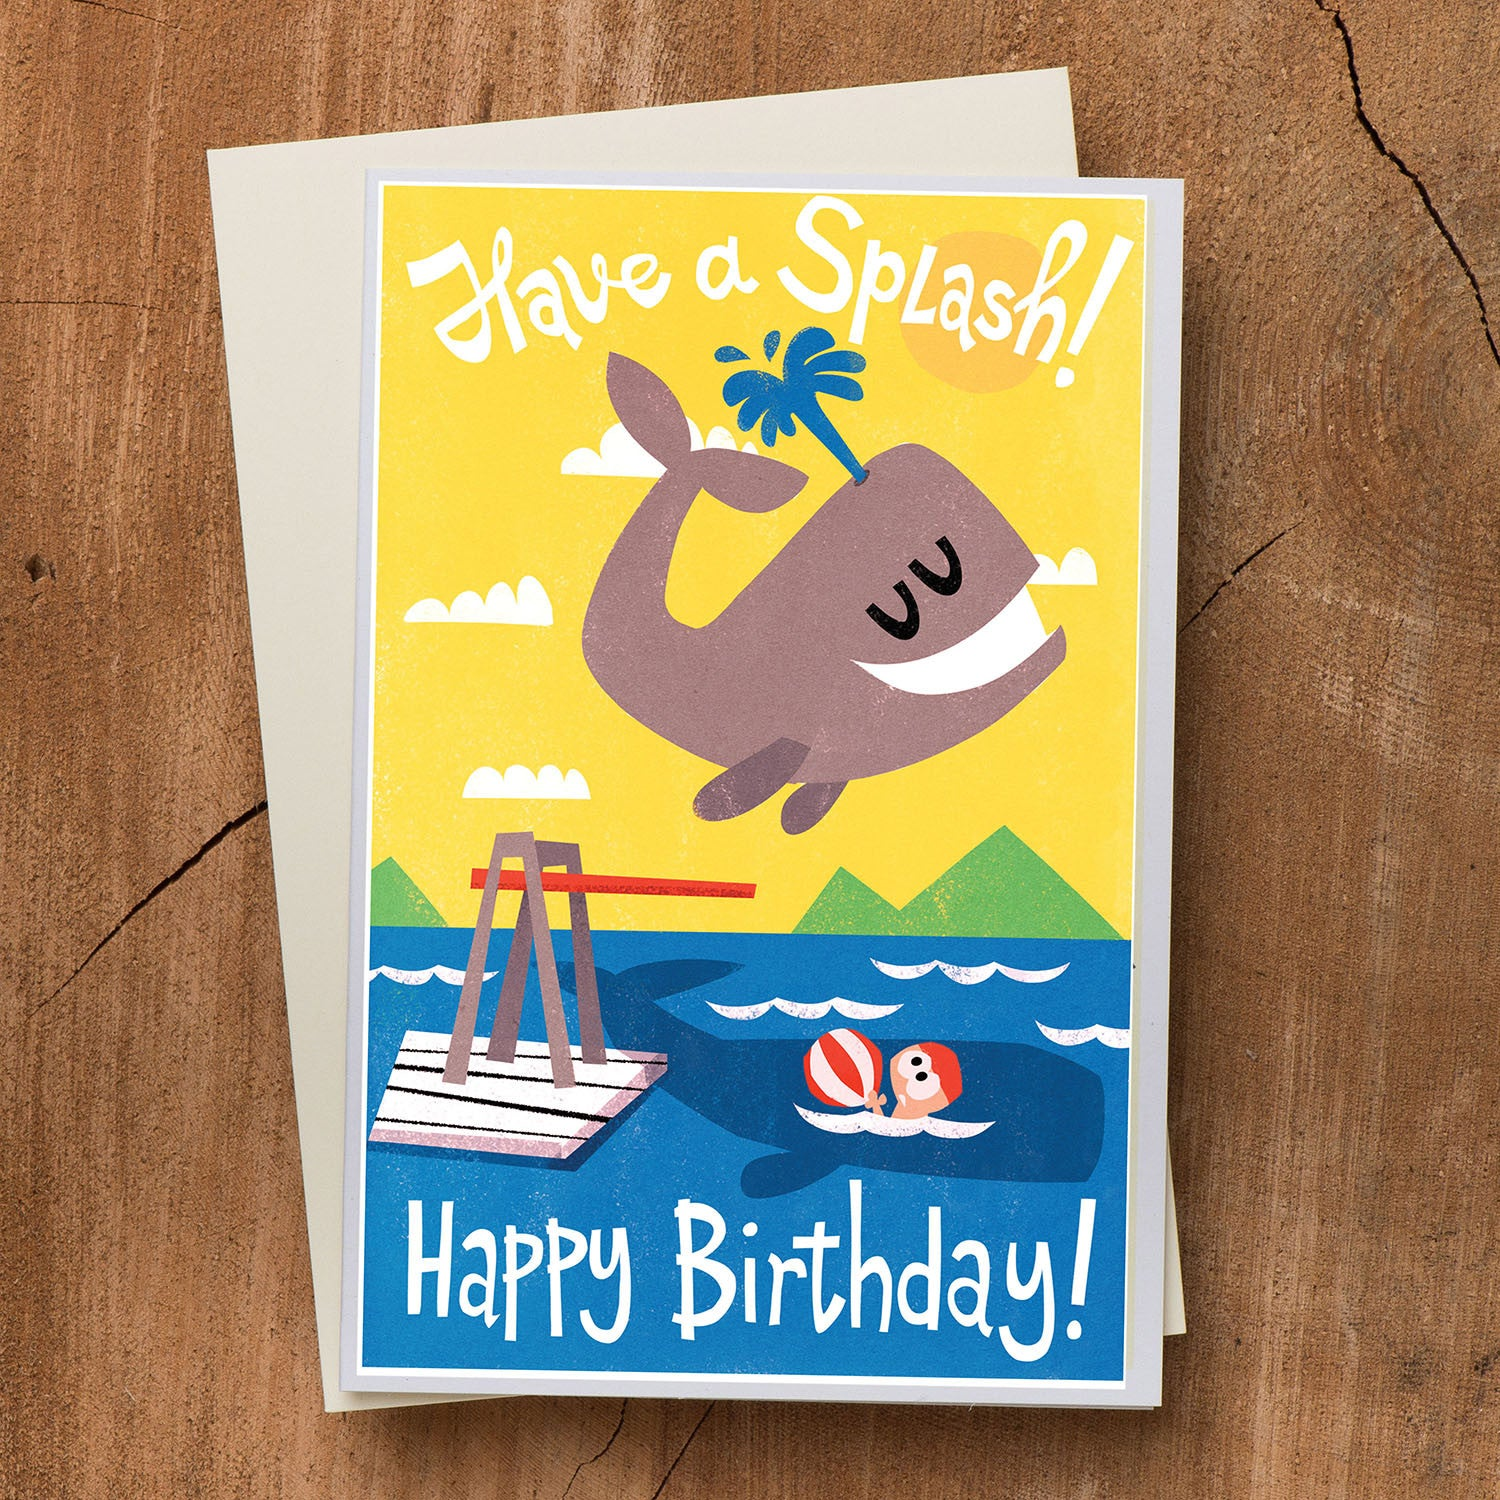 Whale Birthday Card - Have a splash!